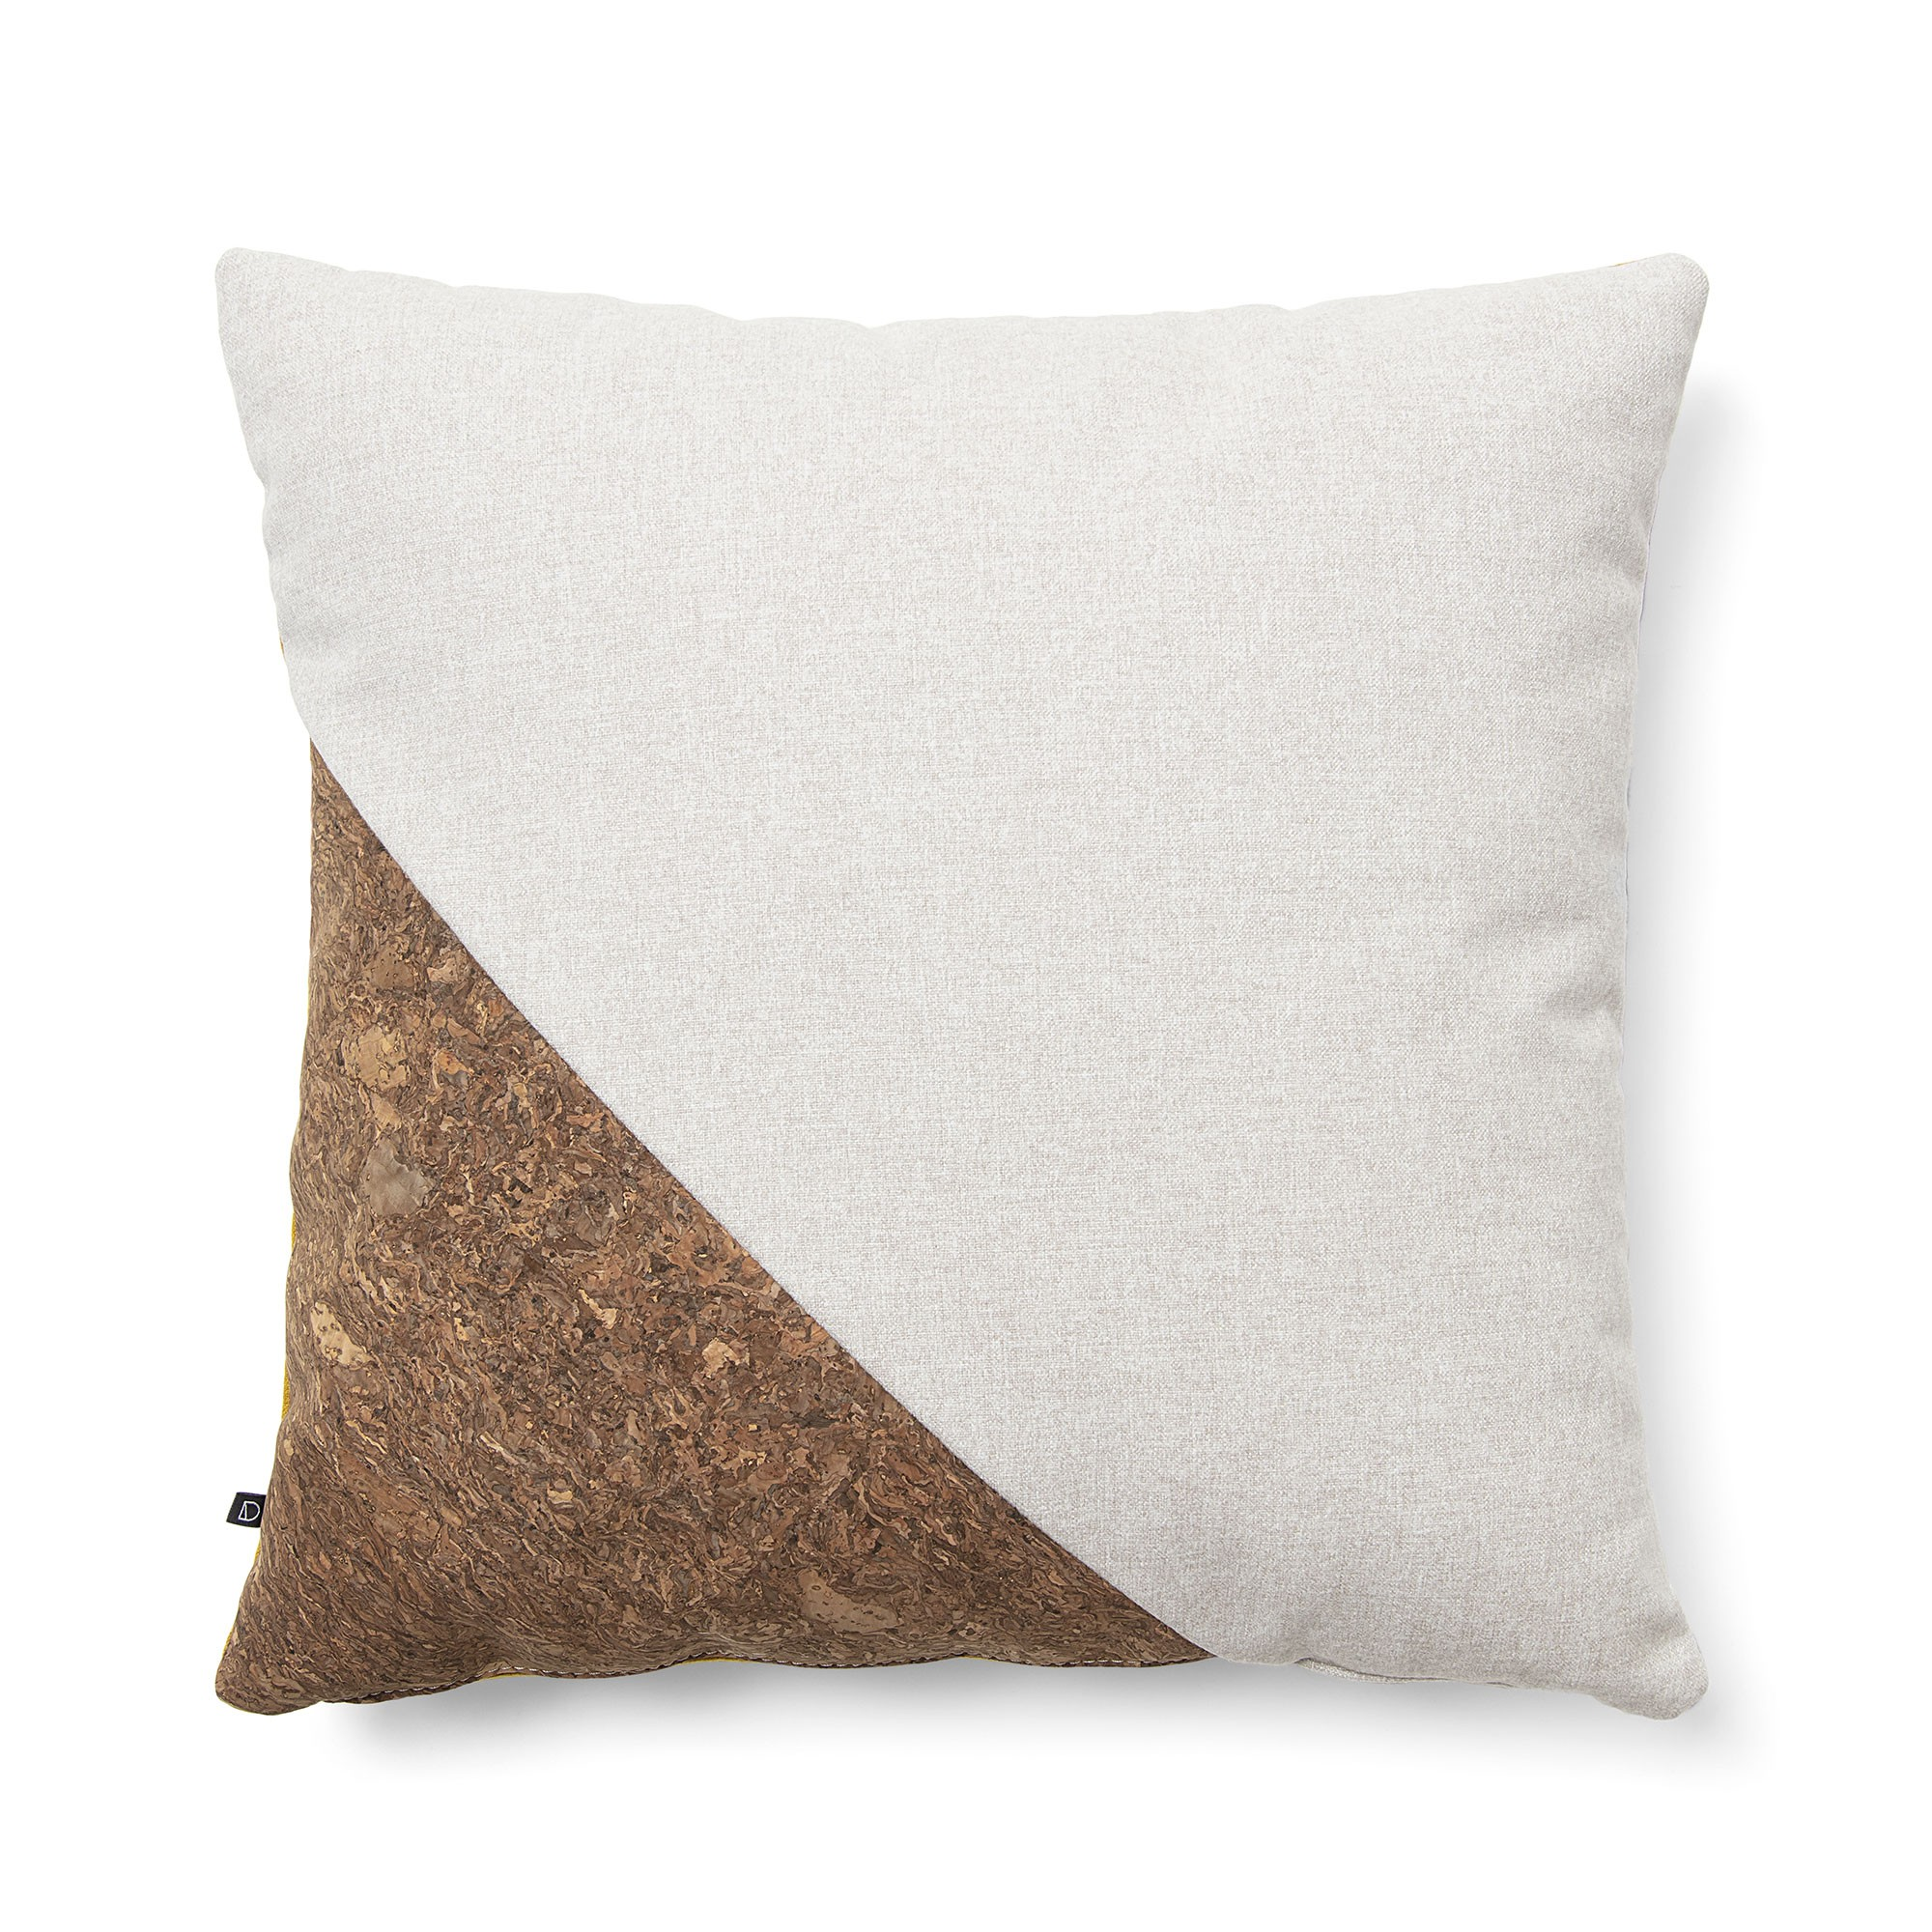 Osborne Fabric Scatter Cushion, Beige / Cork / Mustard